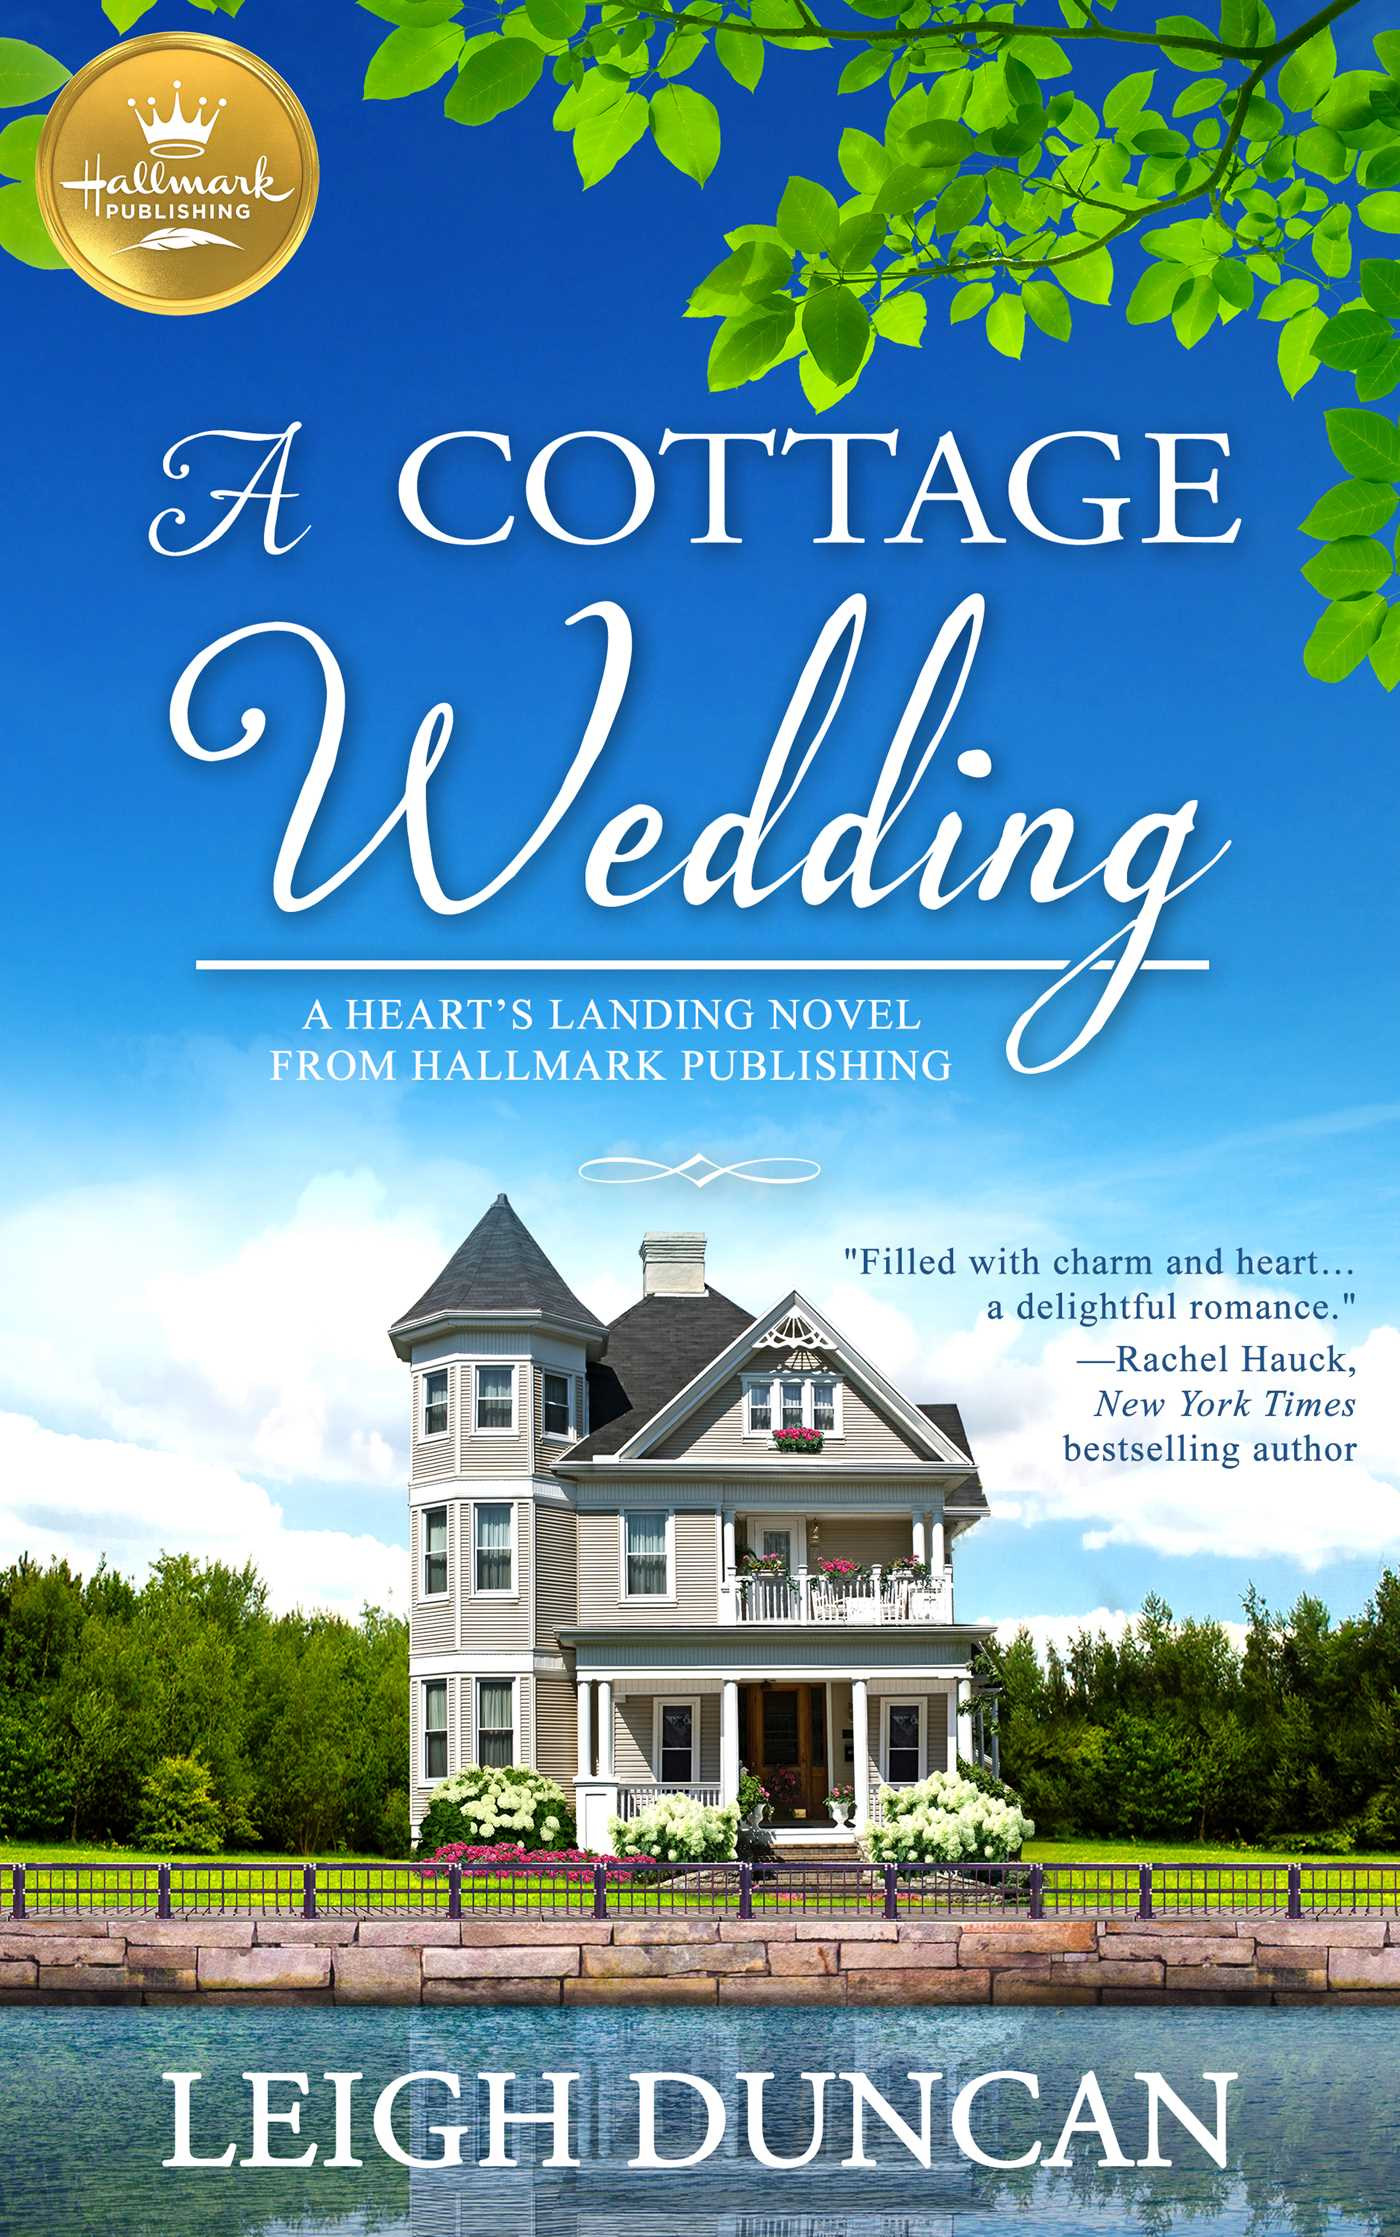 A Cottage Wedding [electronic resource (downloadable eBook)] : a Heart's Landing novel from Hallmark Publishing